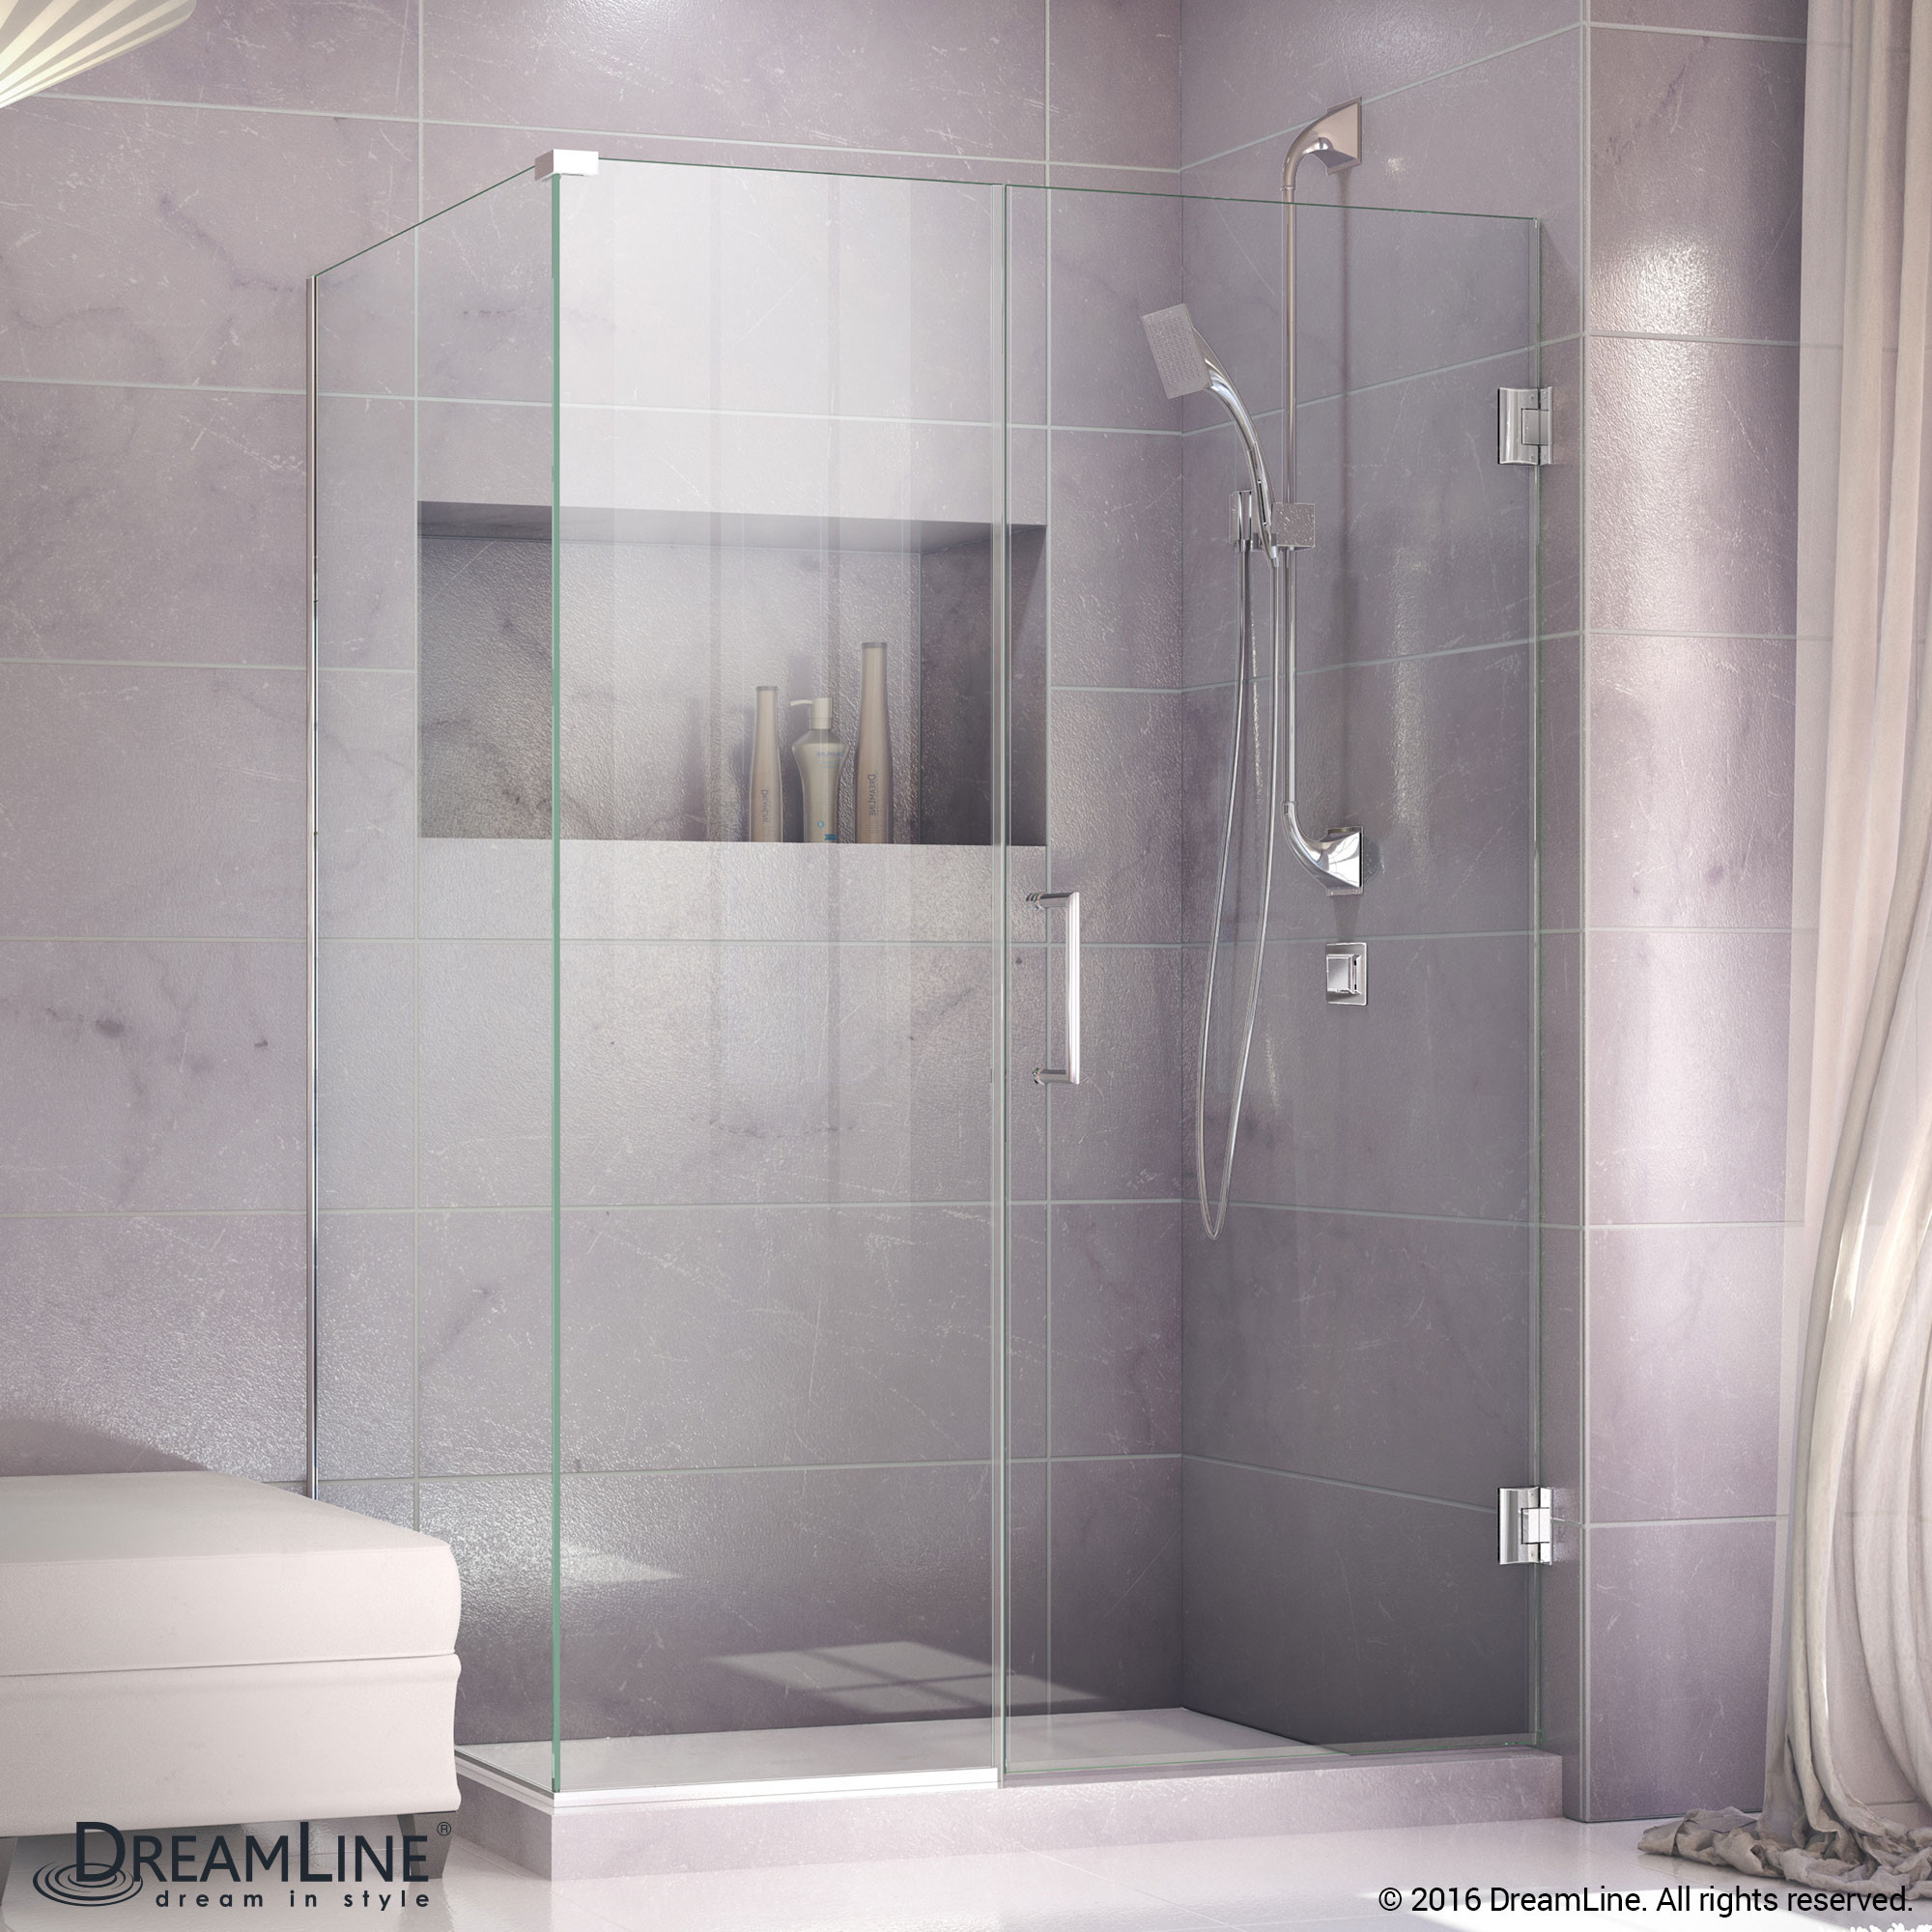 DreamLine SHEN-24590300-01 Unidoor Plus Hinged Shower Enclosure In Chrome Finish Hardware